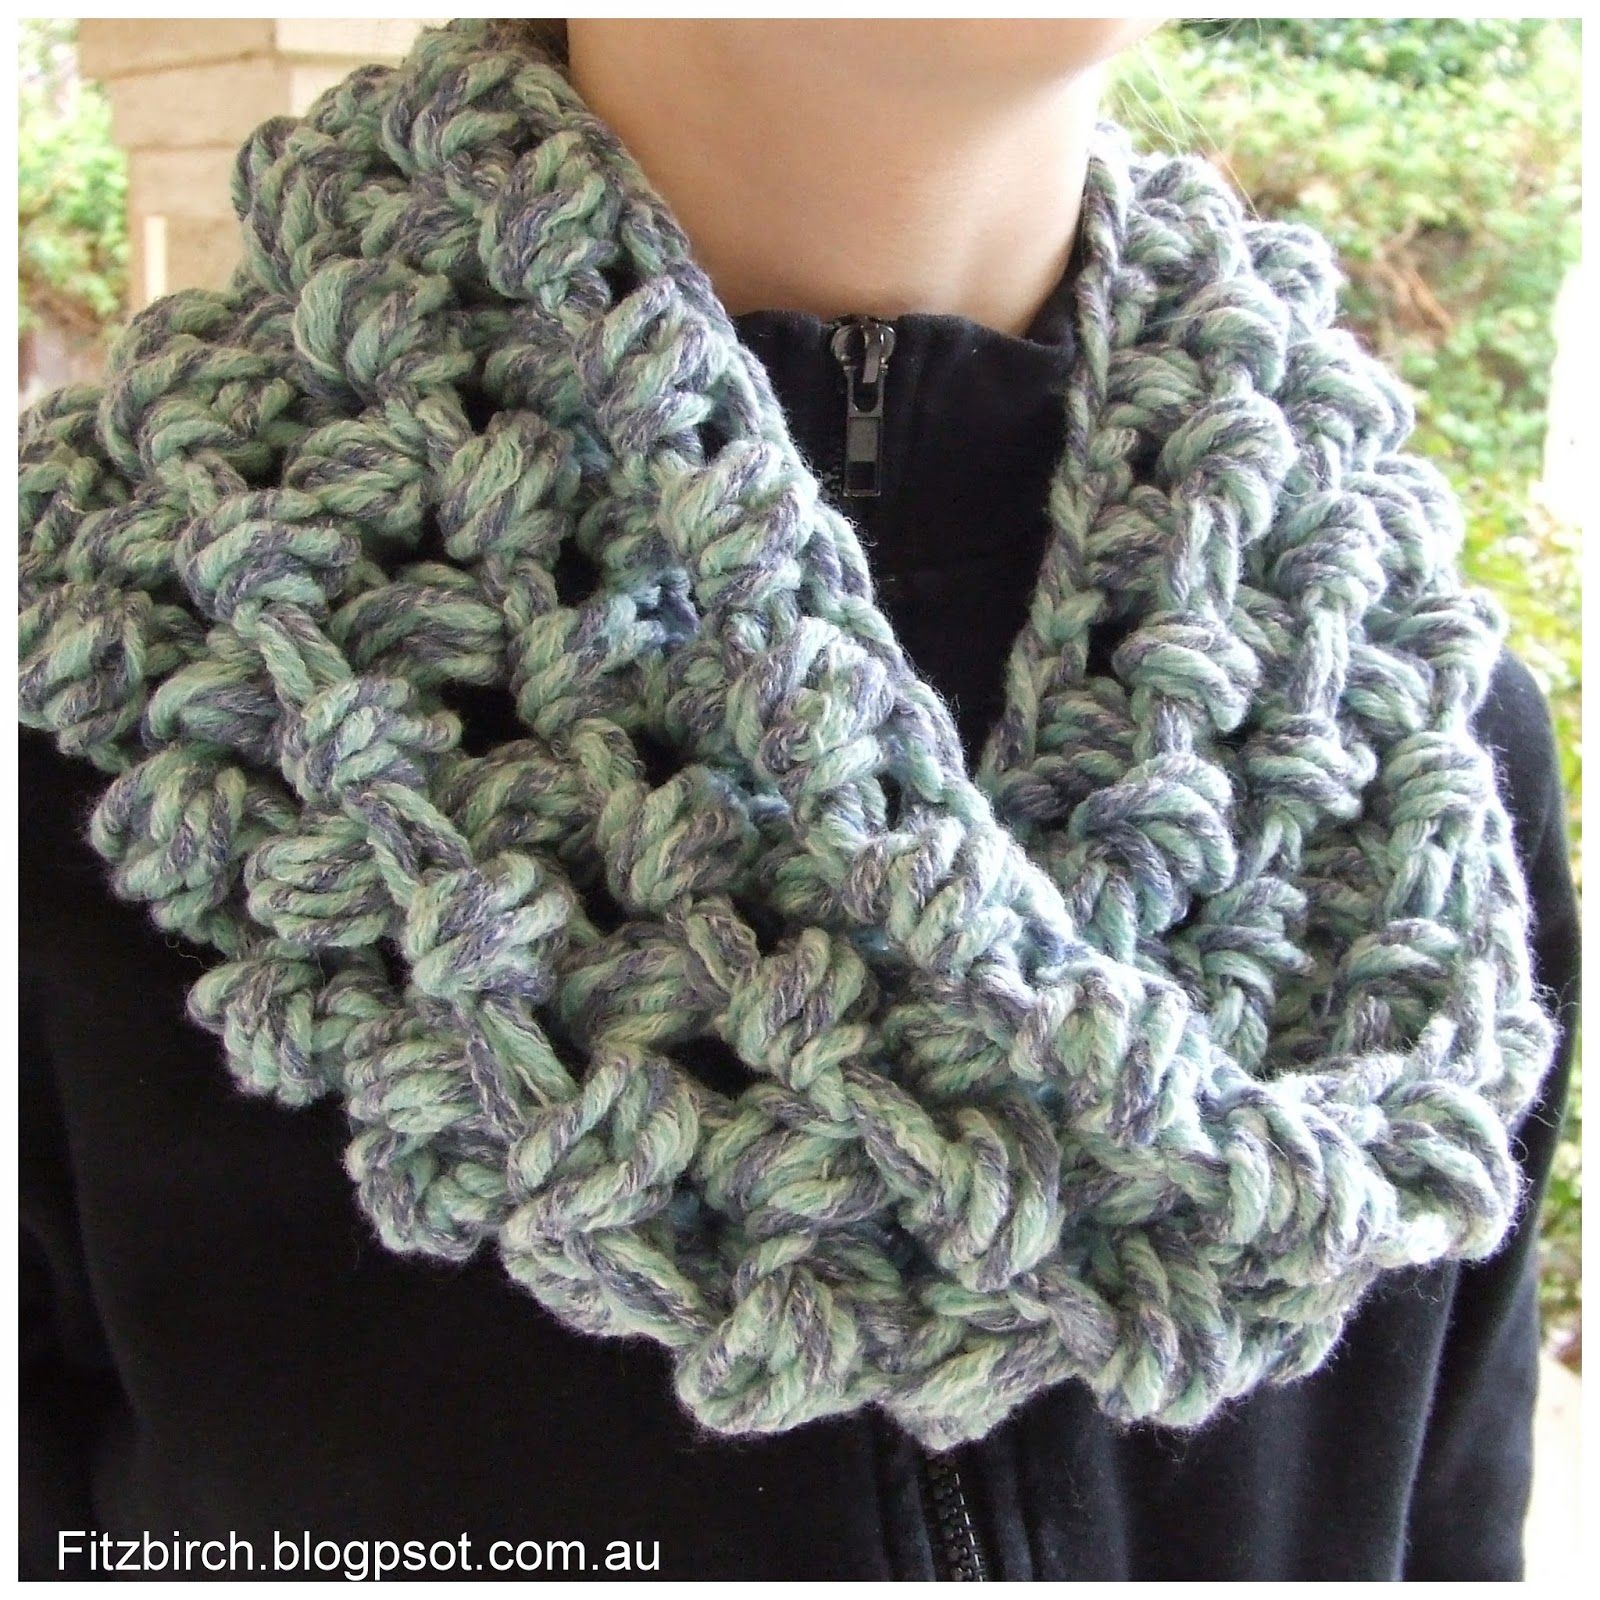 FitzBirch Crafts: Cluster Crochet Cowl | DiY! | Pinterest